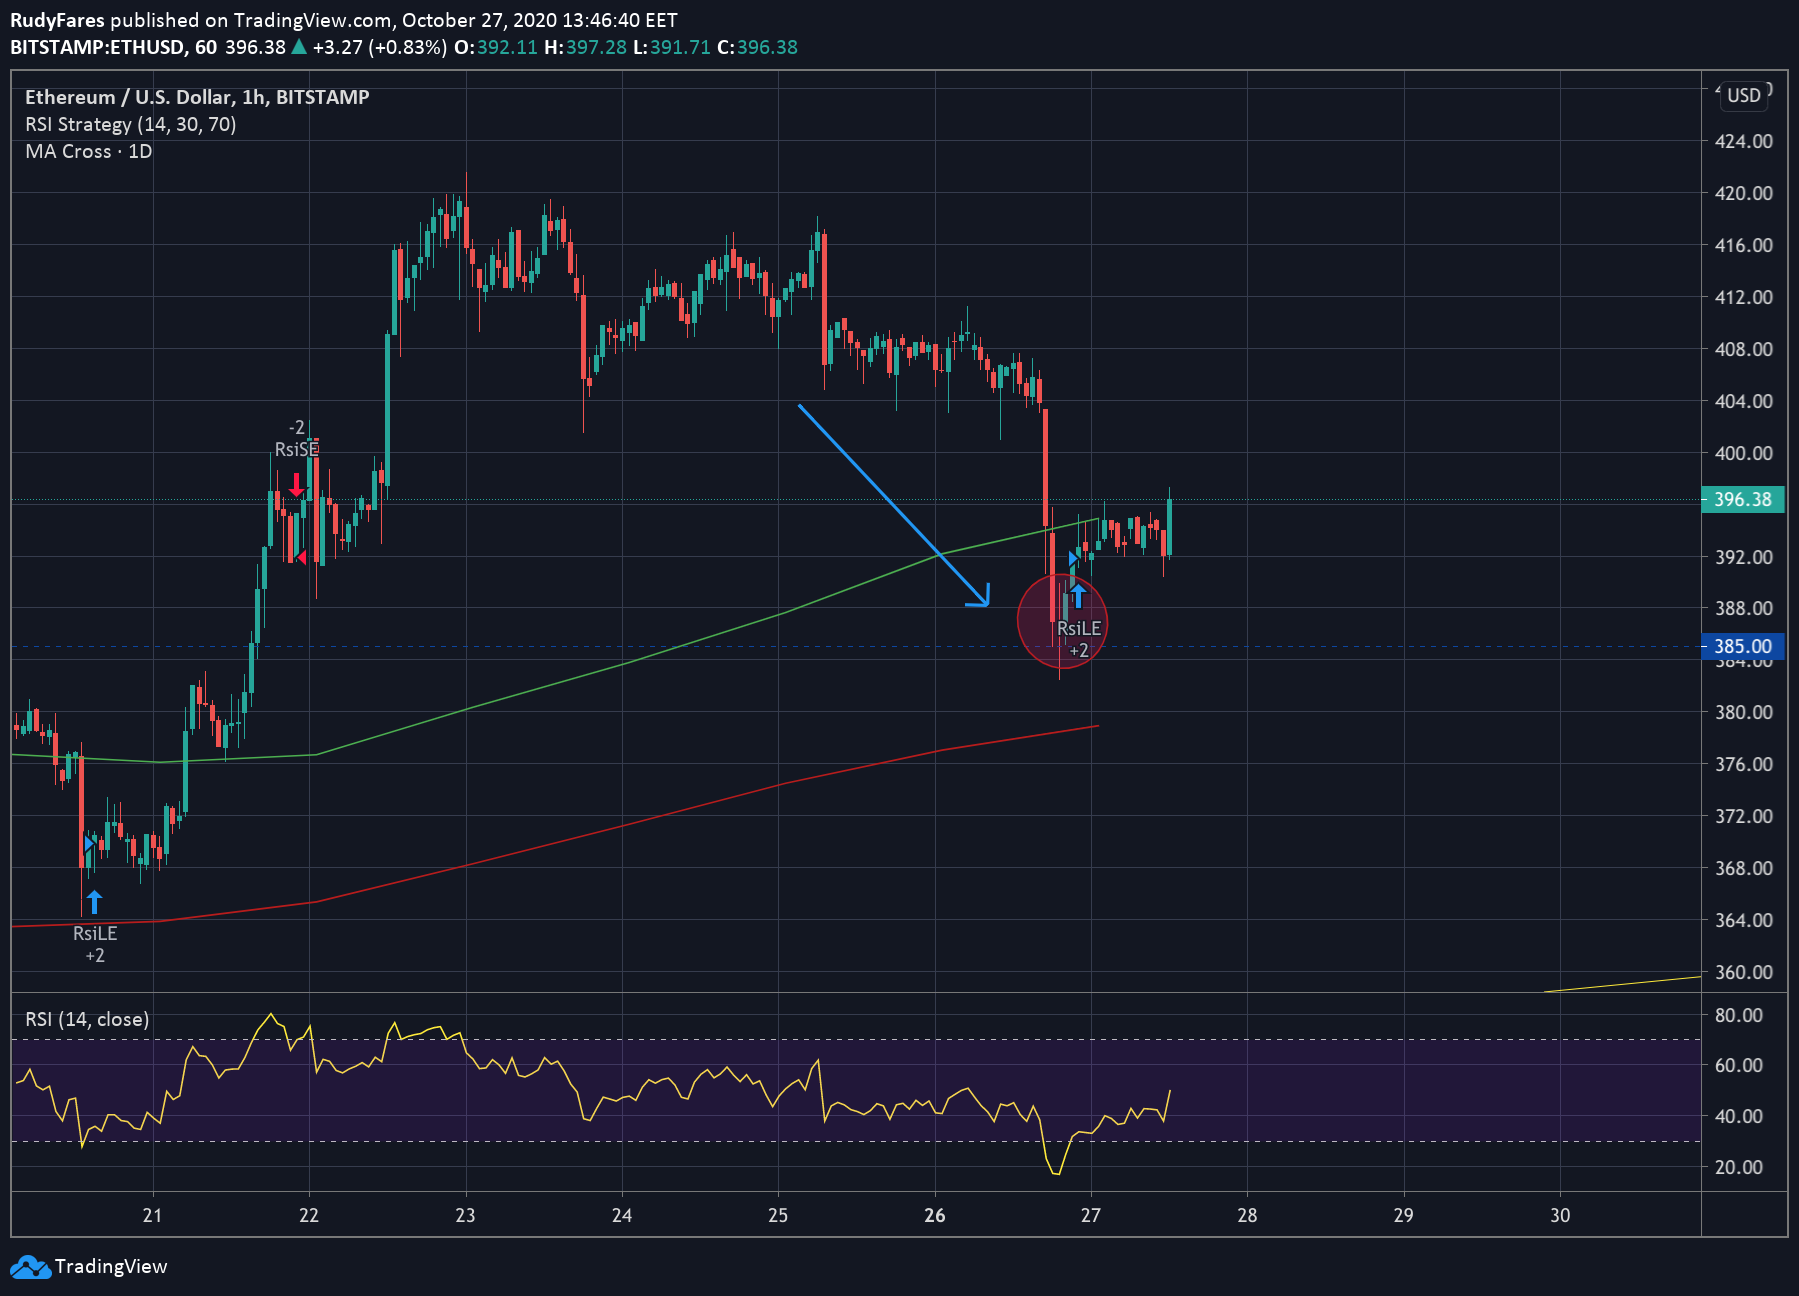 ETH/USD price 1H chart showing the price adjustment back to the USD 390 mark